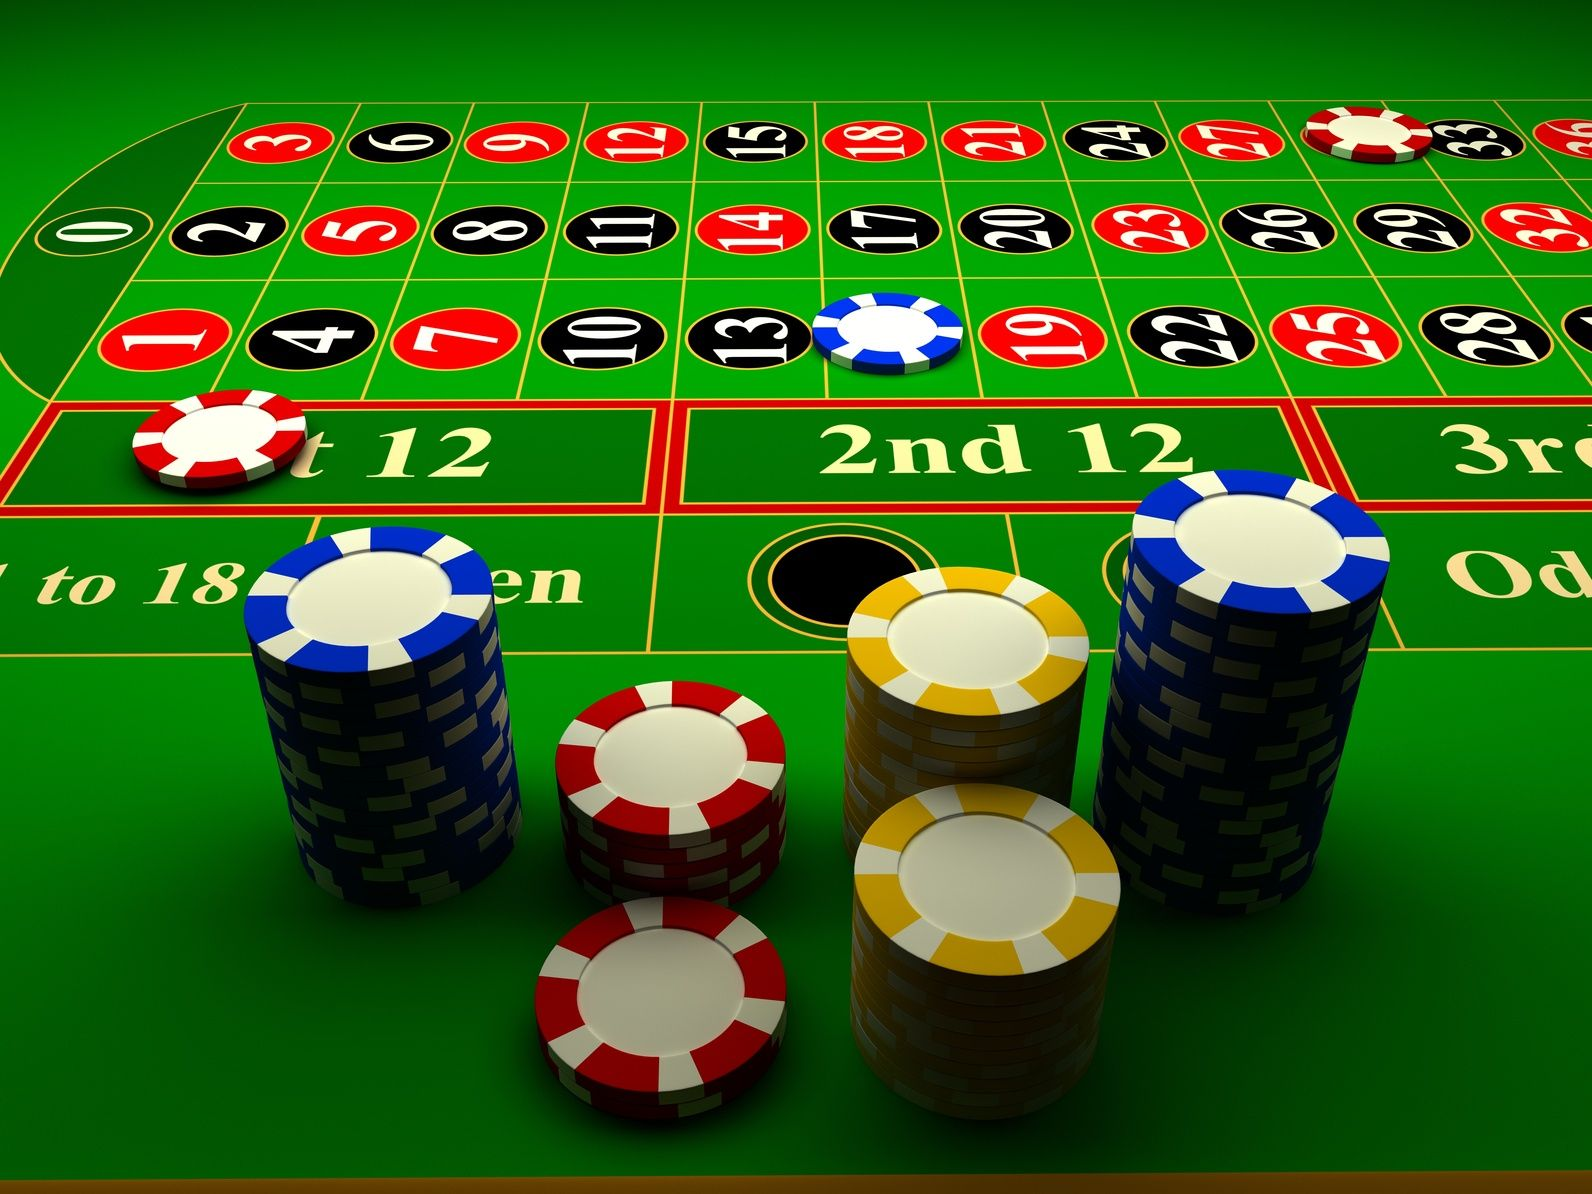 Free online casino beat the dealer intervention in depth gambling